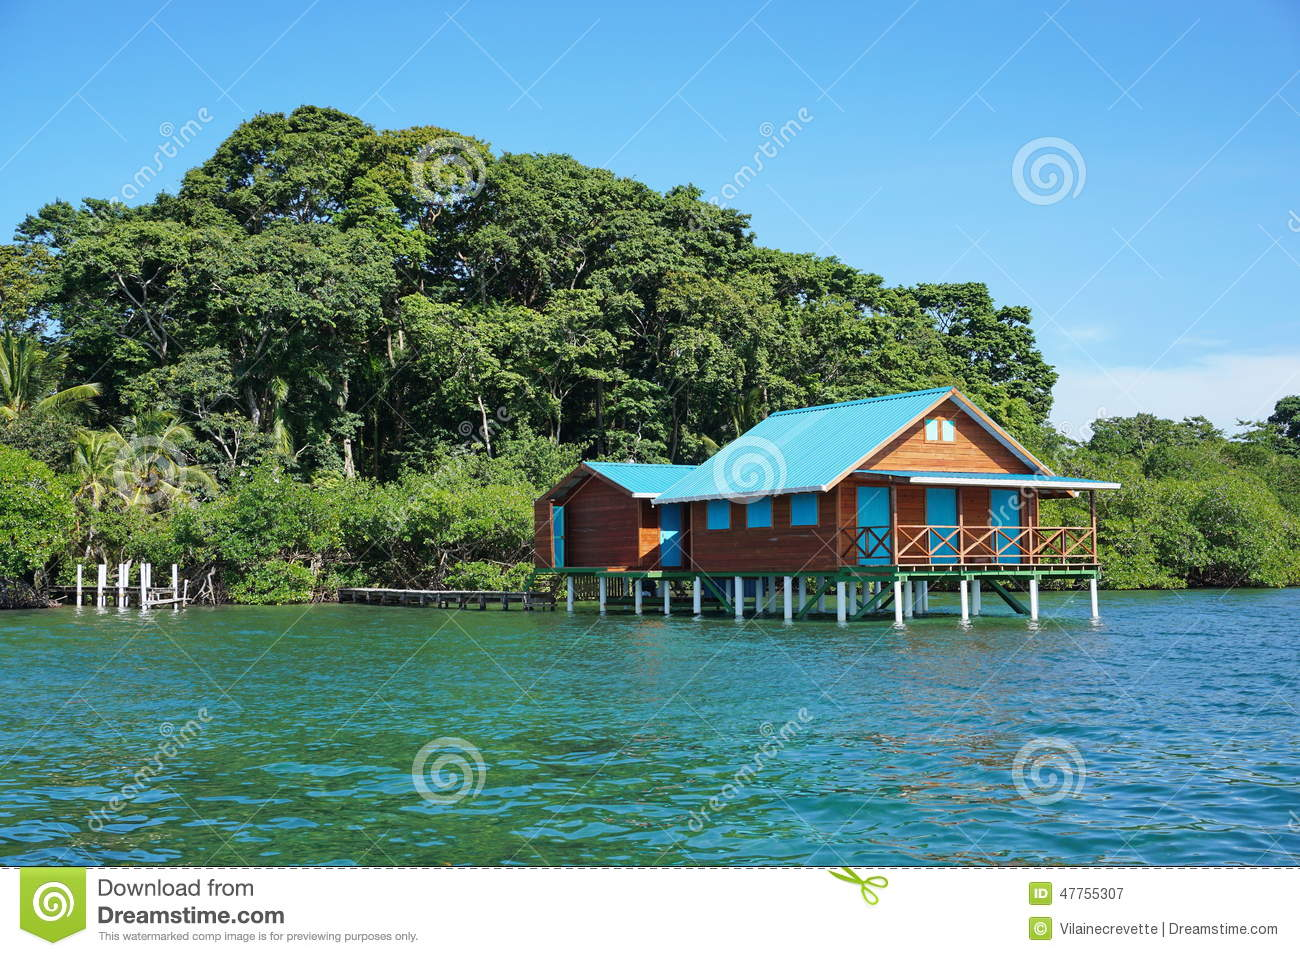 bocas del toro black singles Bocas del toro, panama for discounted cruises that visit bocas del toro, panama, click bocas town was established on colon island in this archipelago by the united fruit company in the 1920s as a base for its banana plantations.